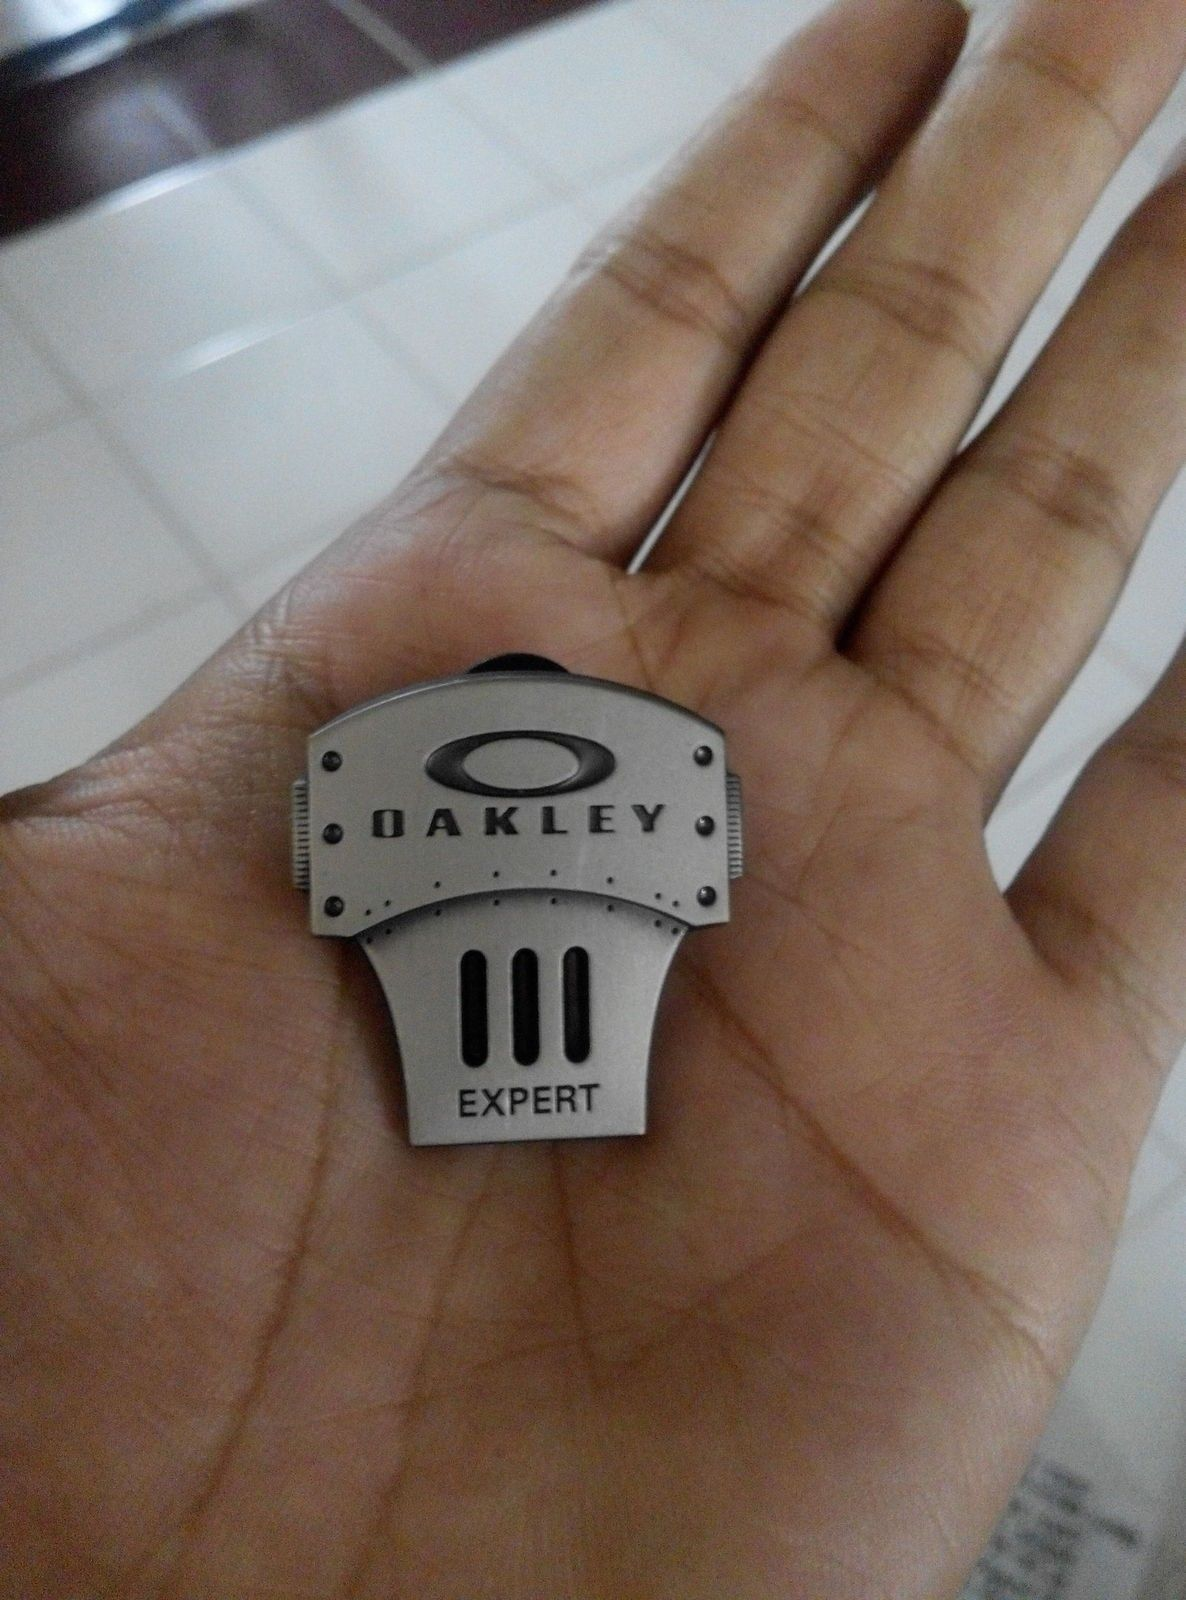 oakley expert pin. new - IMG_20151215_130649.jpg